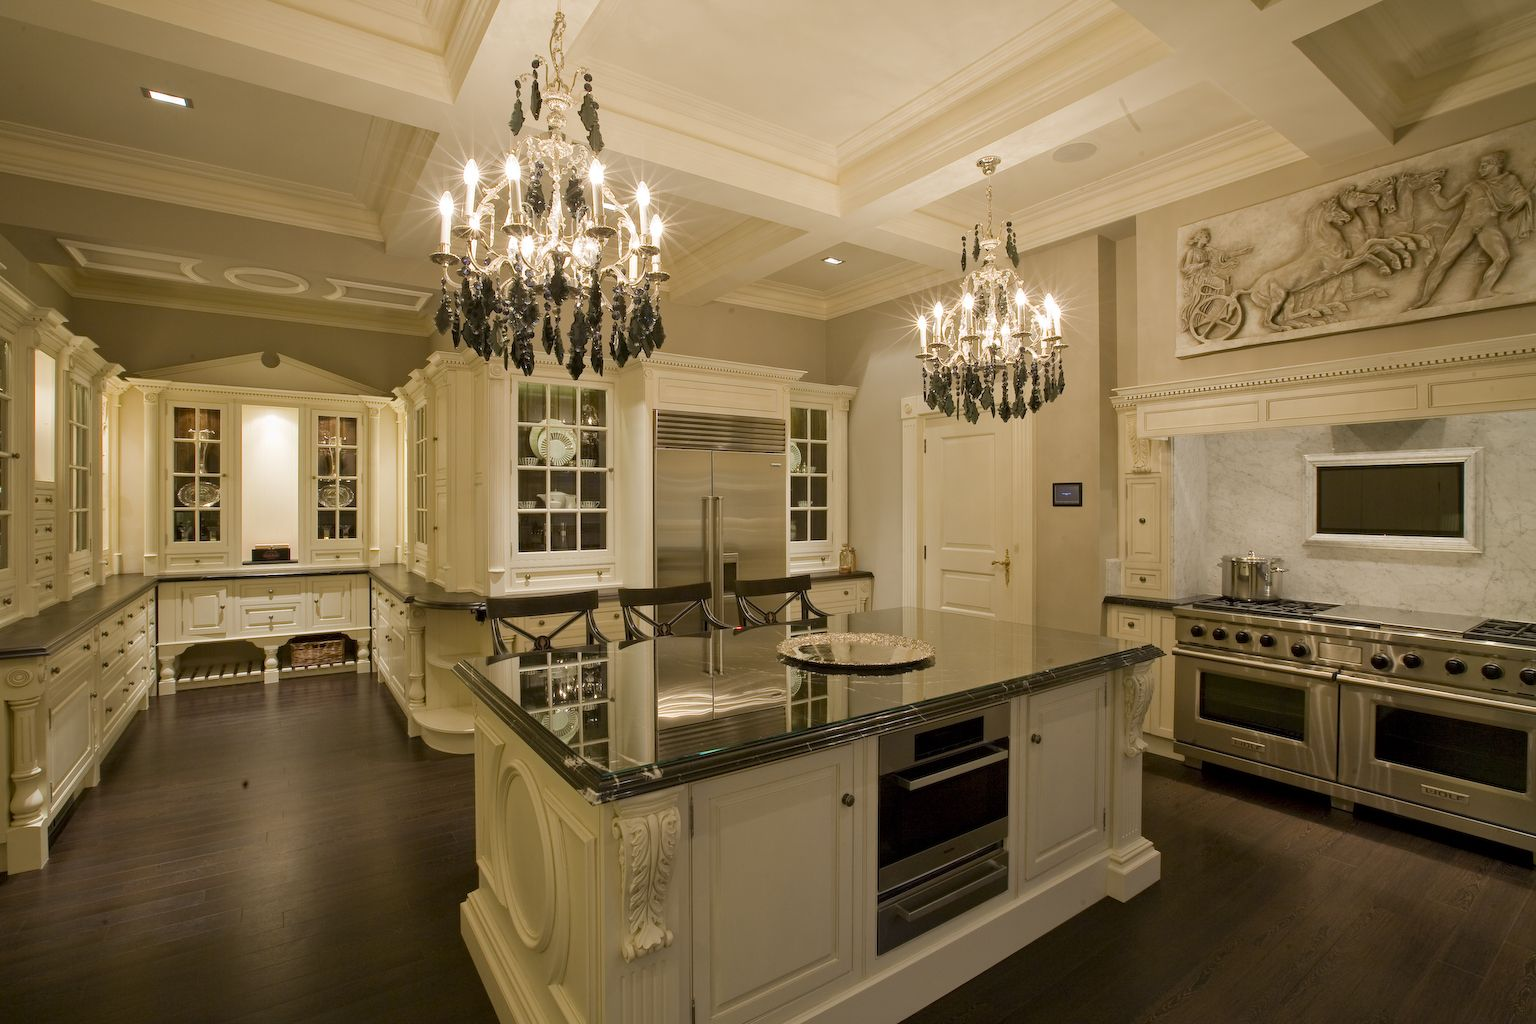 8 Tips For Giving Your Kitchen Cabinets And Island A Designer Look Luxury Kitchen Design Dream Kitchens Design Luxury Kitchens